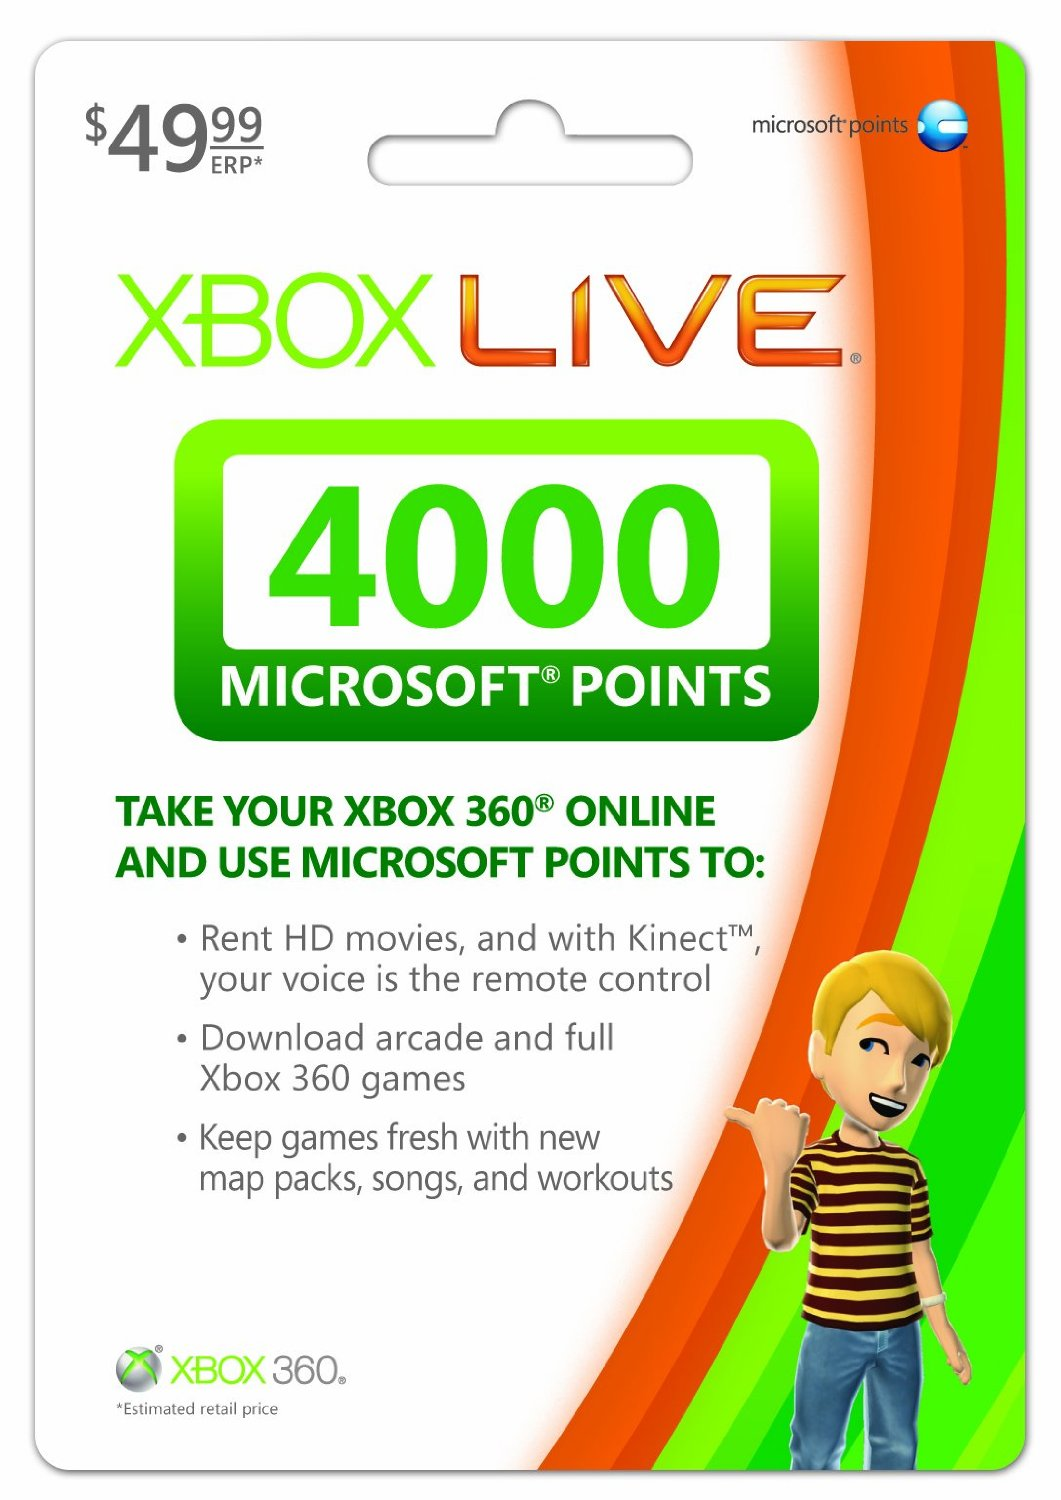 Cartao Xbox LIVE 4000 Microsoft Points USA